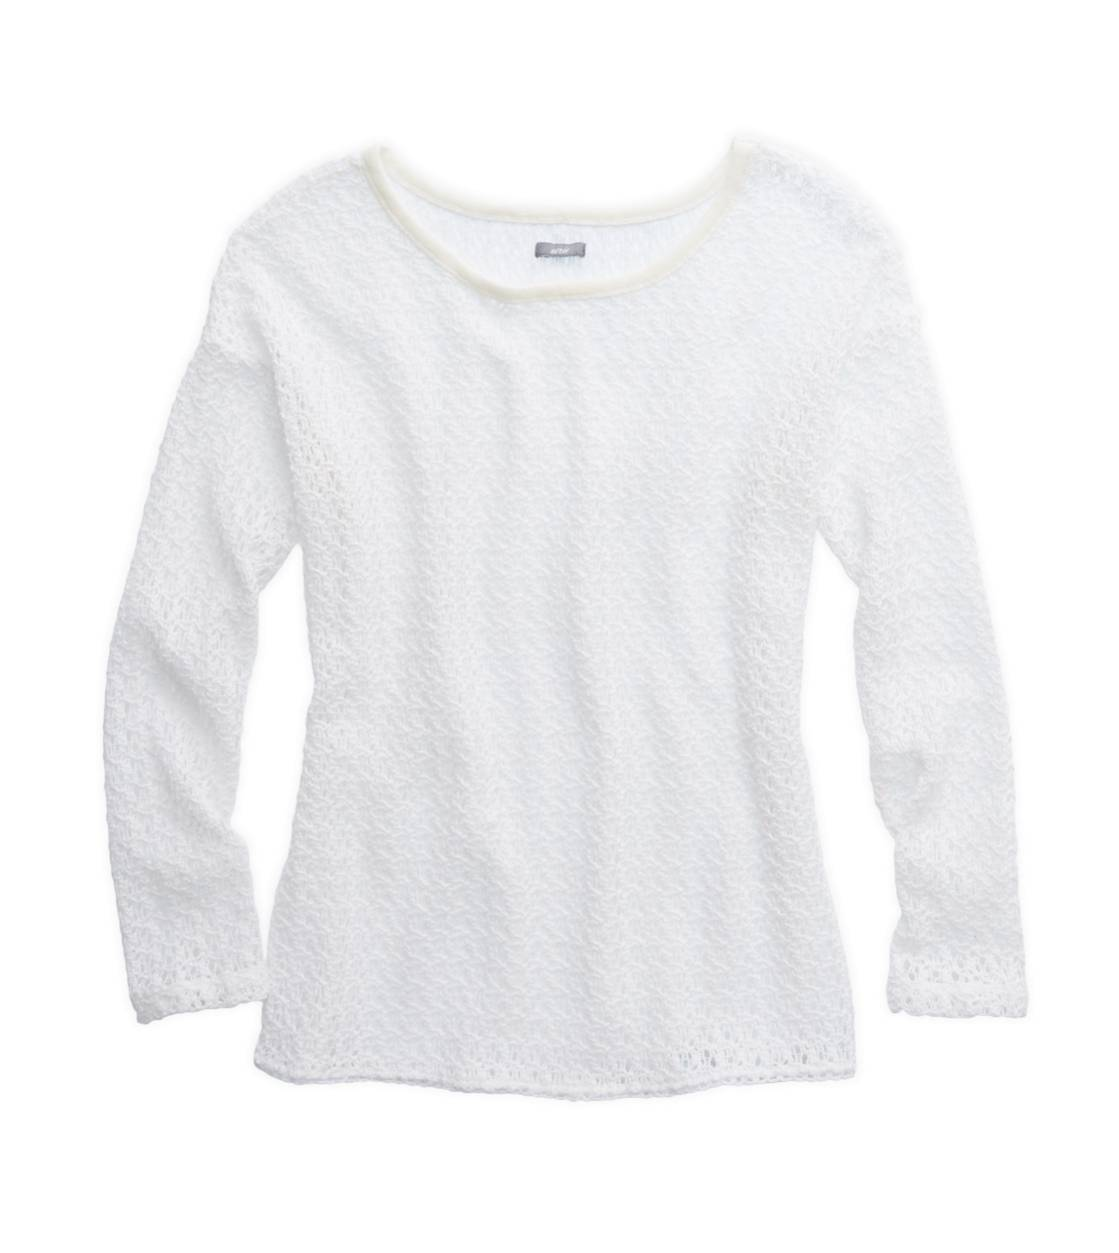 Soft Muslin Aerie Open-Knit Crochet Sweater